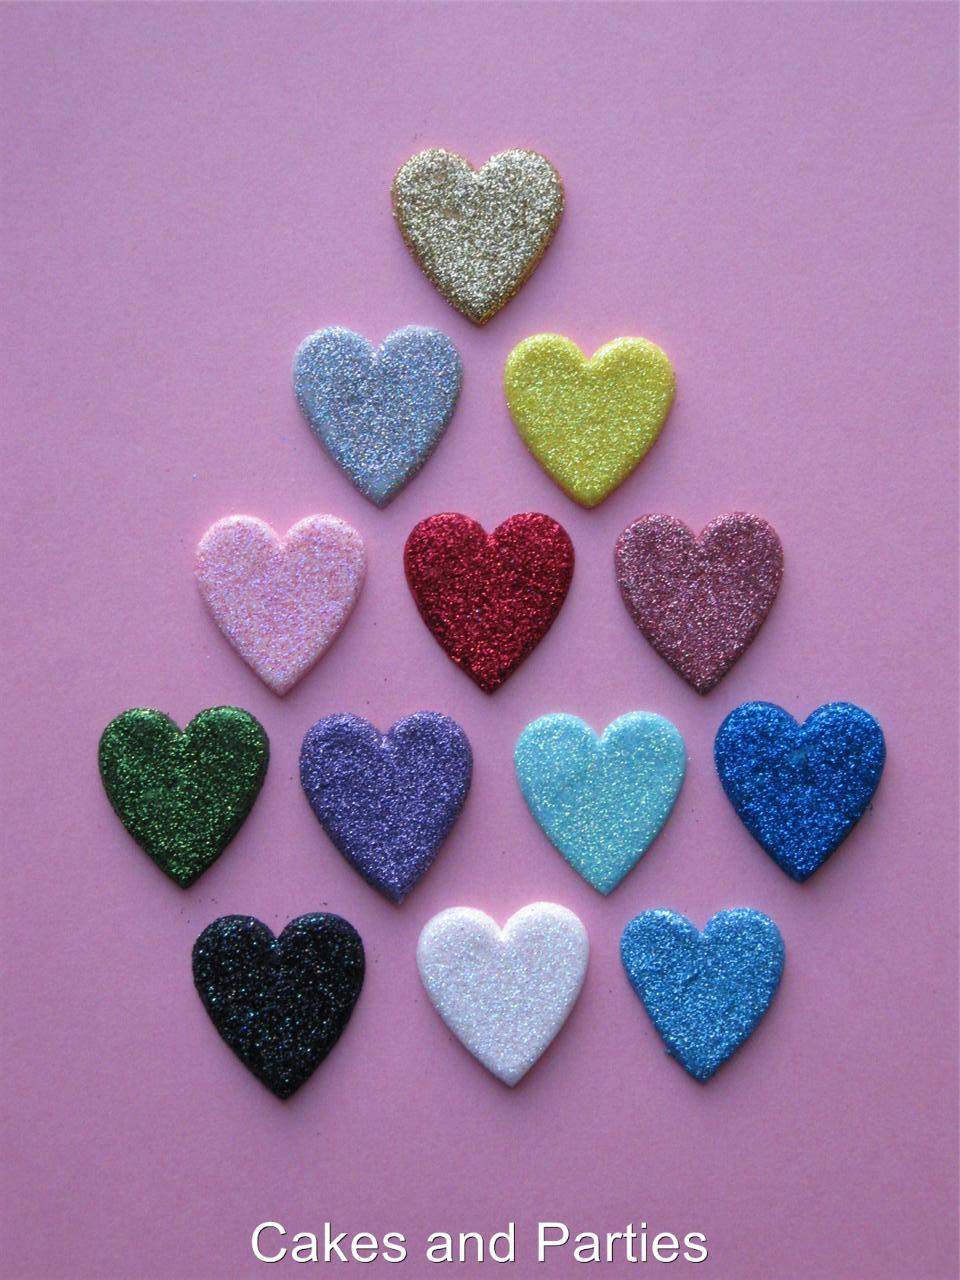 20xEDIBLE GLITTER HEARTS CAKE DECORATIONS VARIOUS ...